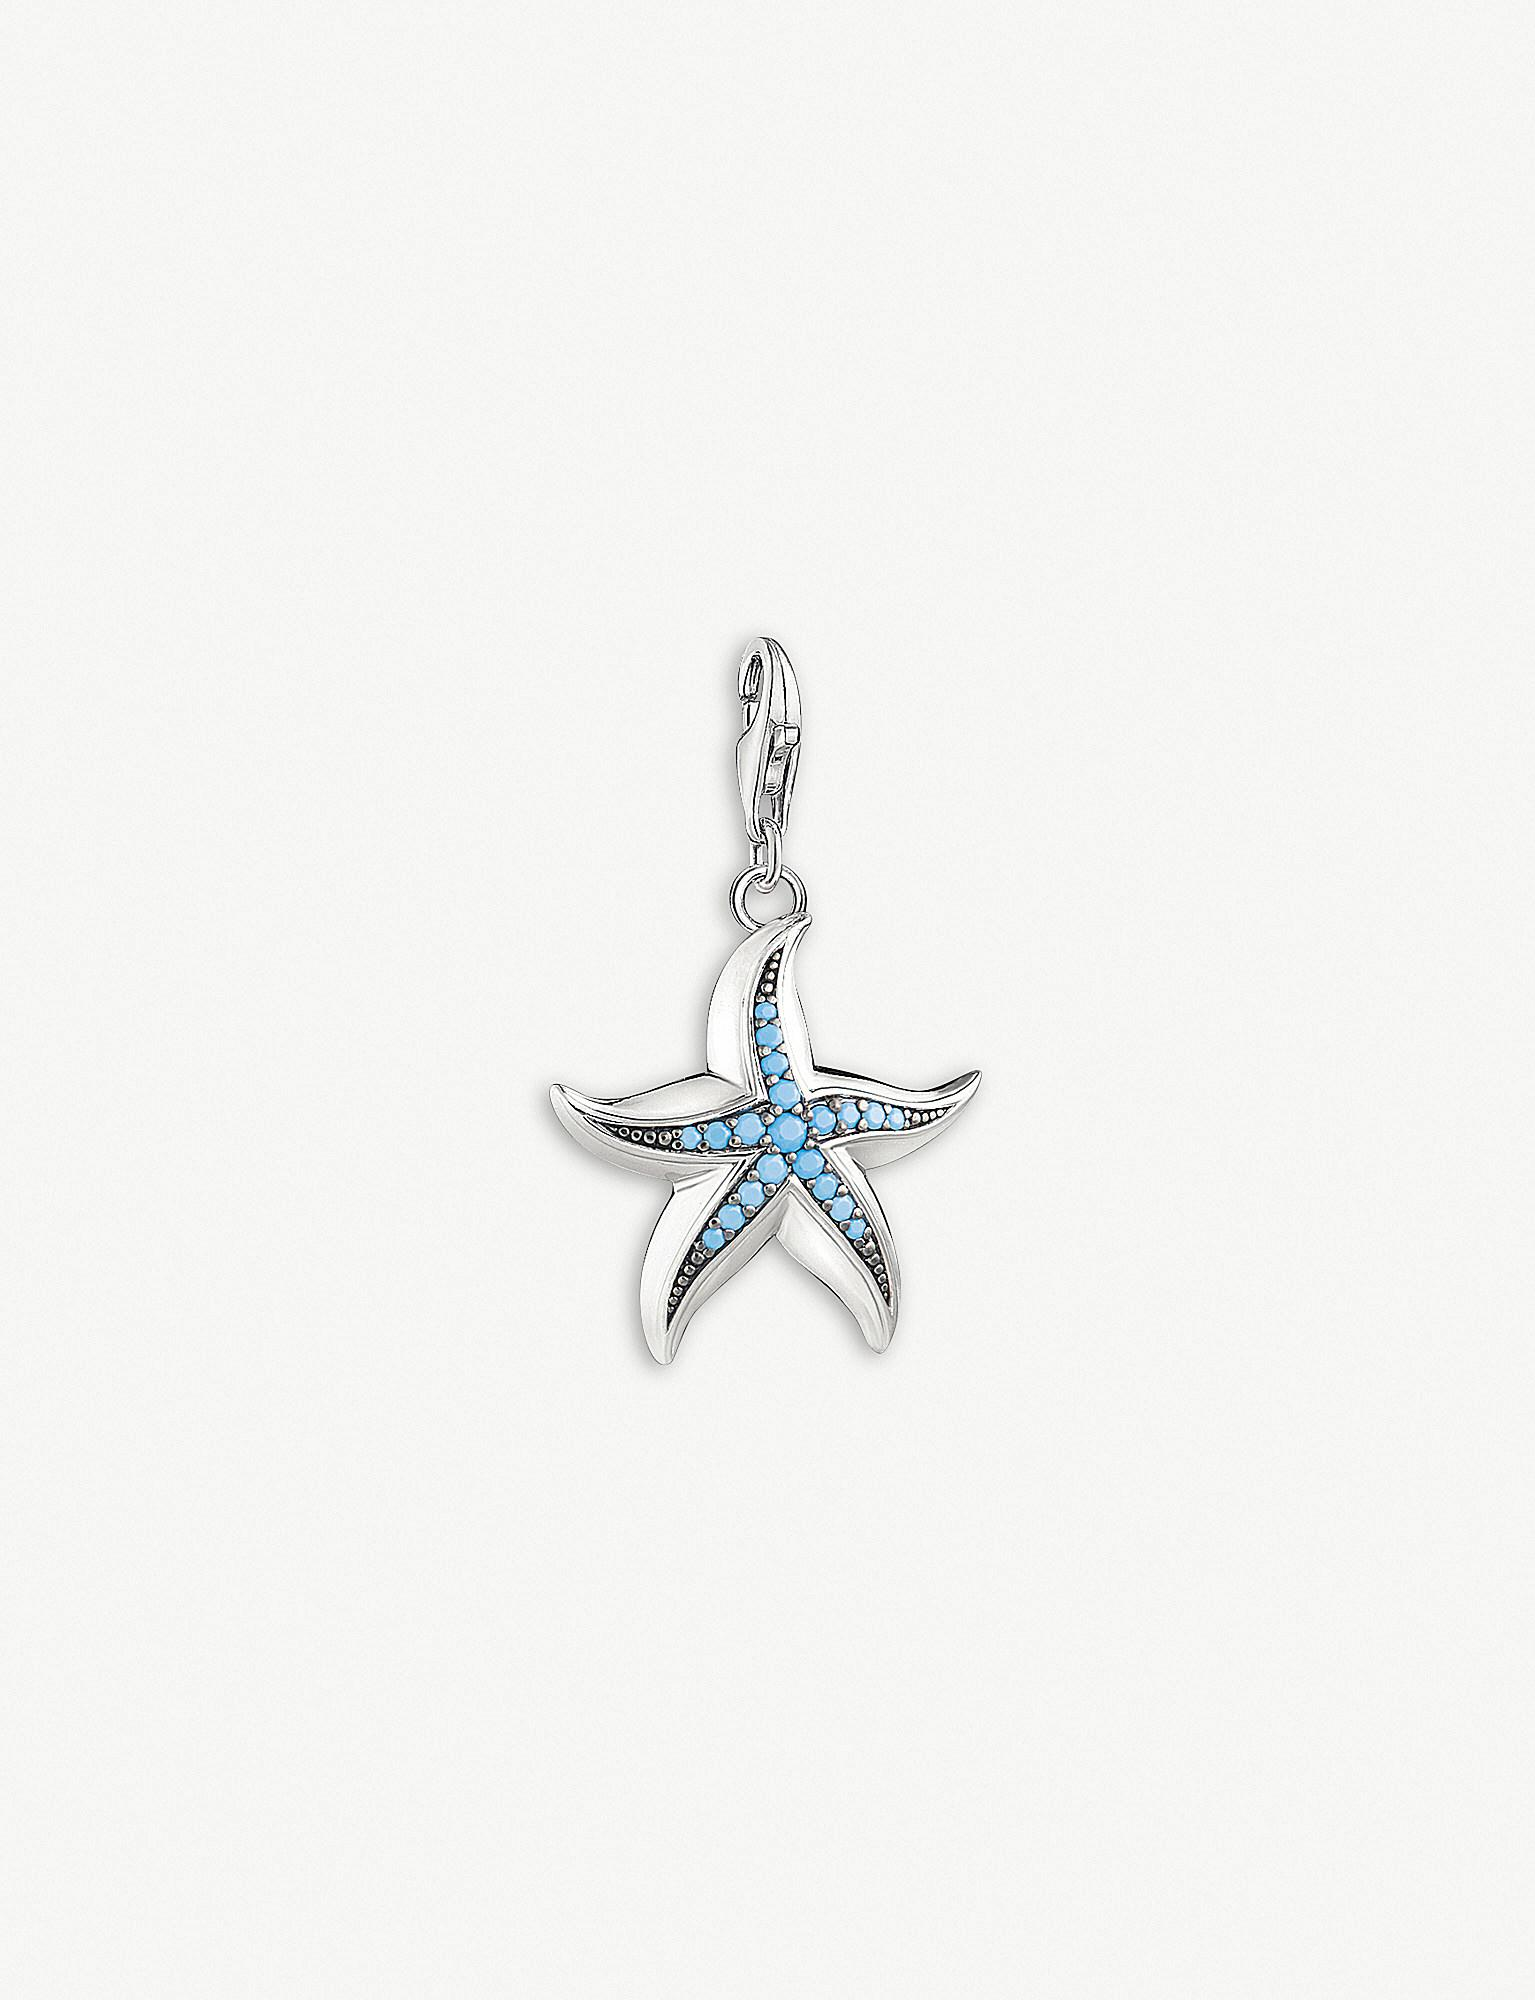 Thomas sabo starfish sterling silver and turquoise pendant in thomas sabo womens metallic starfish sterling silver and turquoise pendant aloadofball Gallery